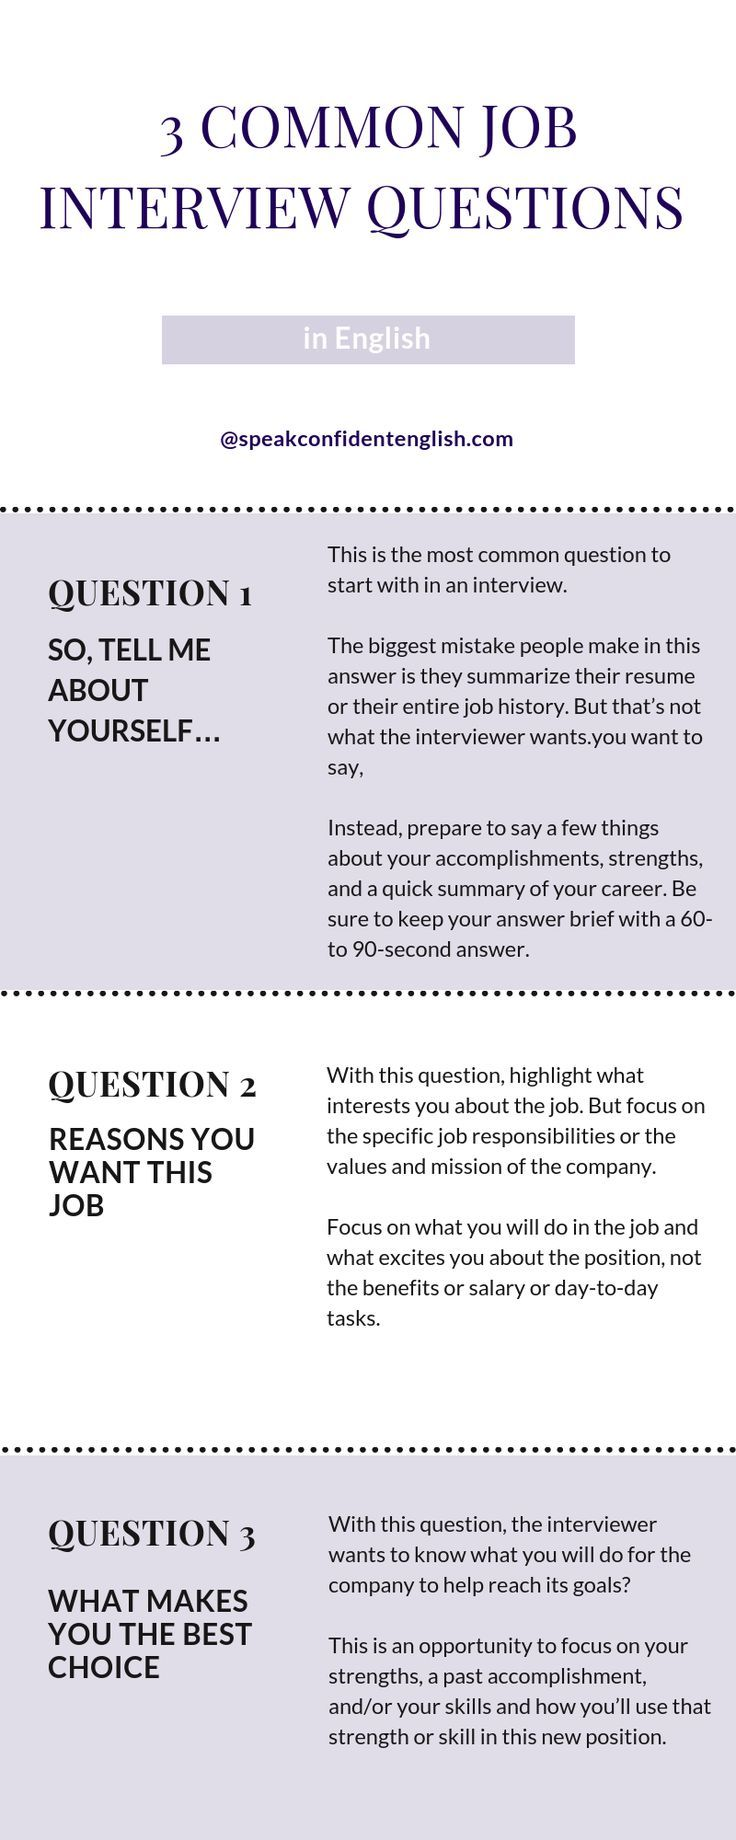 10 Common Job Interview Questions In English You Need To Know